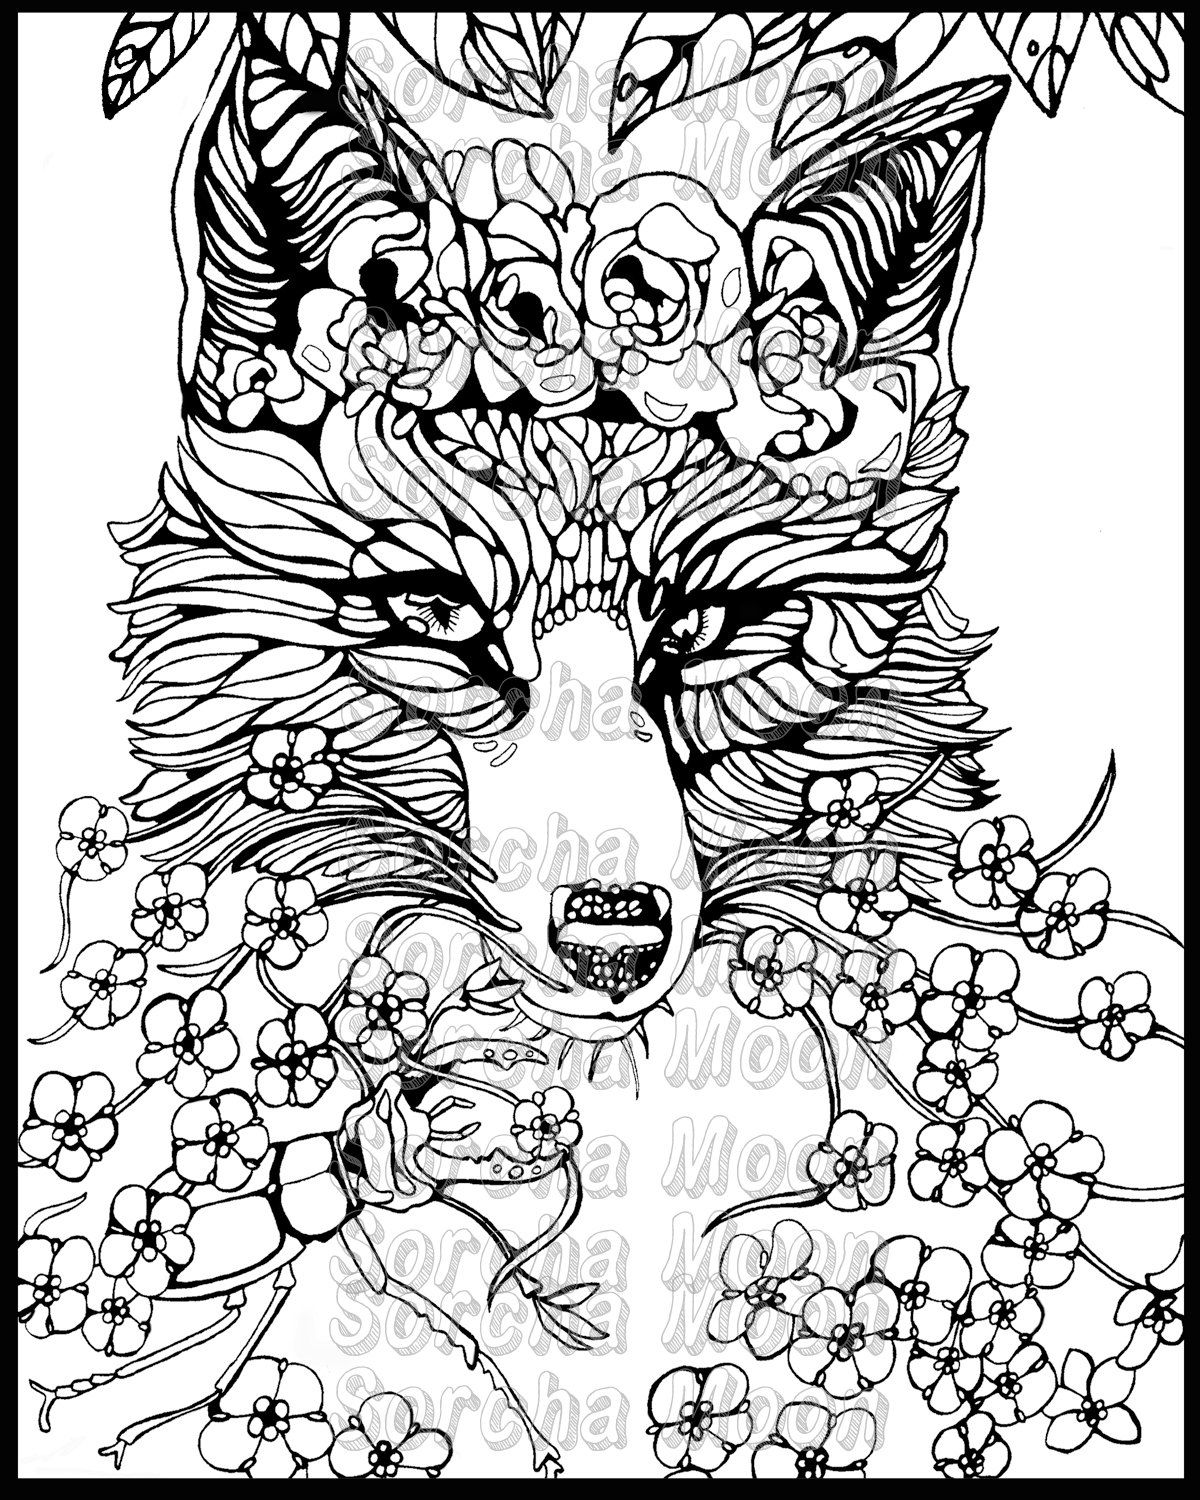 Free coloring page fox - Fox Forget Me Nots Coloring Page For Adults By Sorchamoon On Etsy